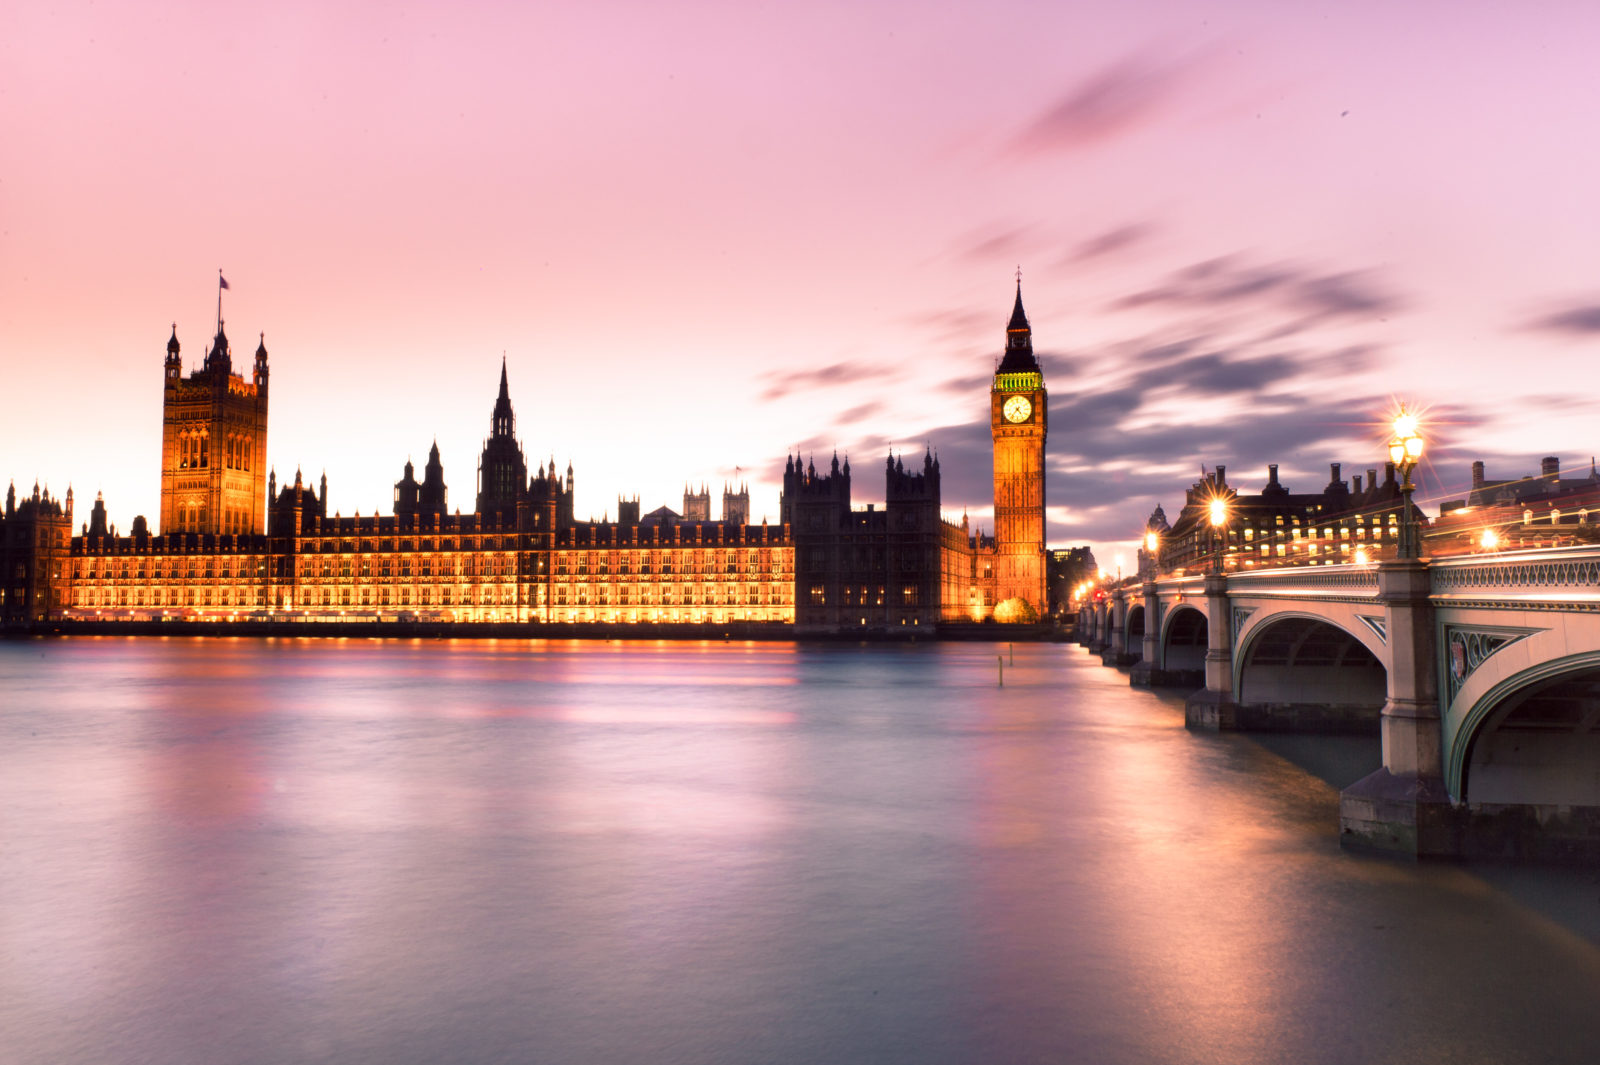 beautify city scape of big ben in london